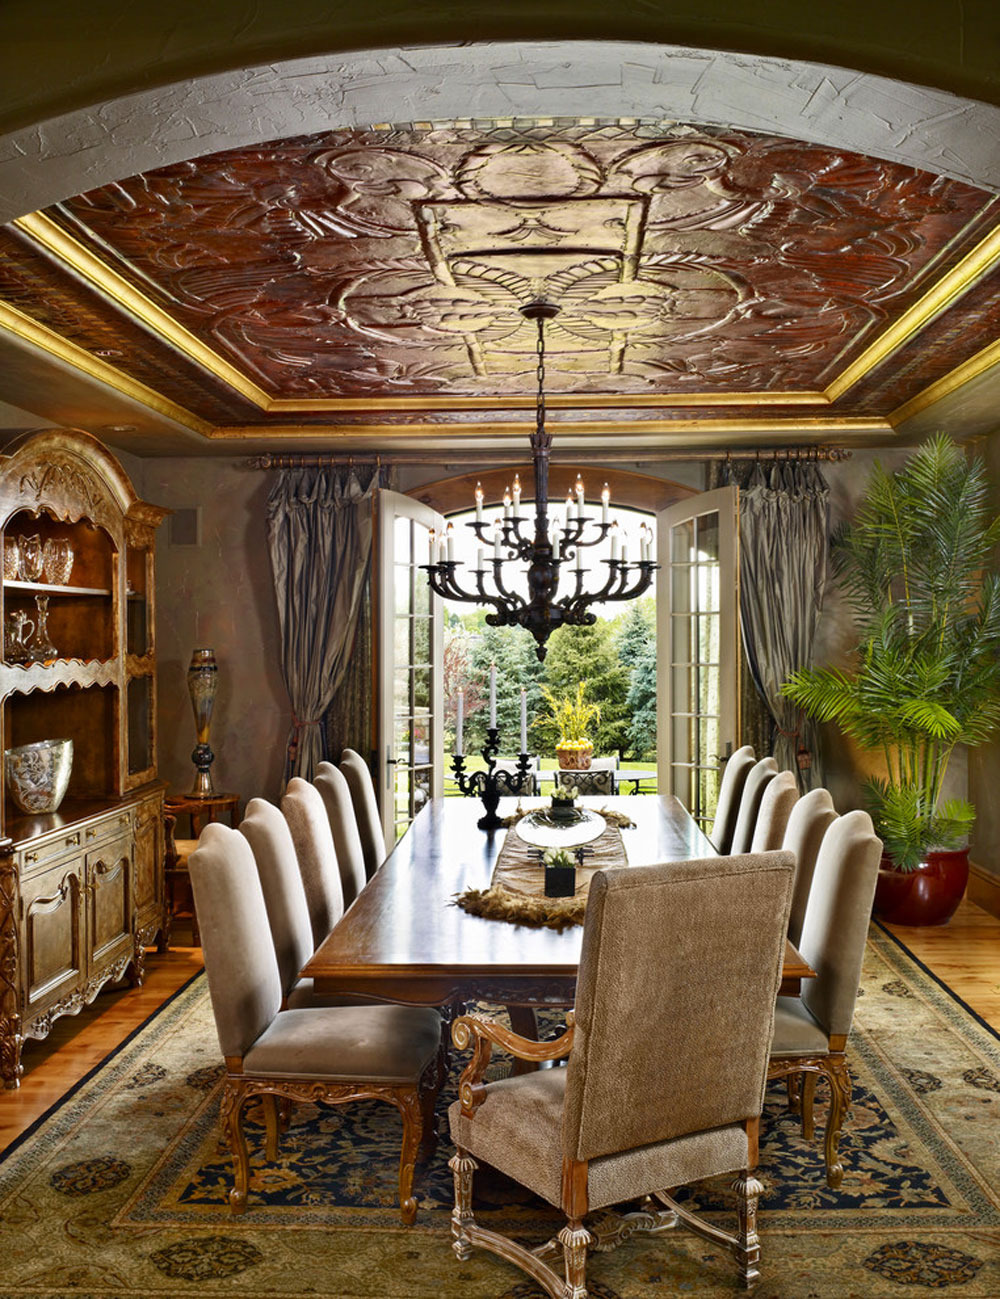 Most Beautiful House Interiors Beautiful Beautiful Houses Interior Design Tips for Small or Big Homes